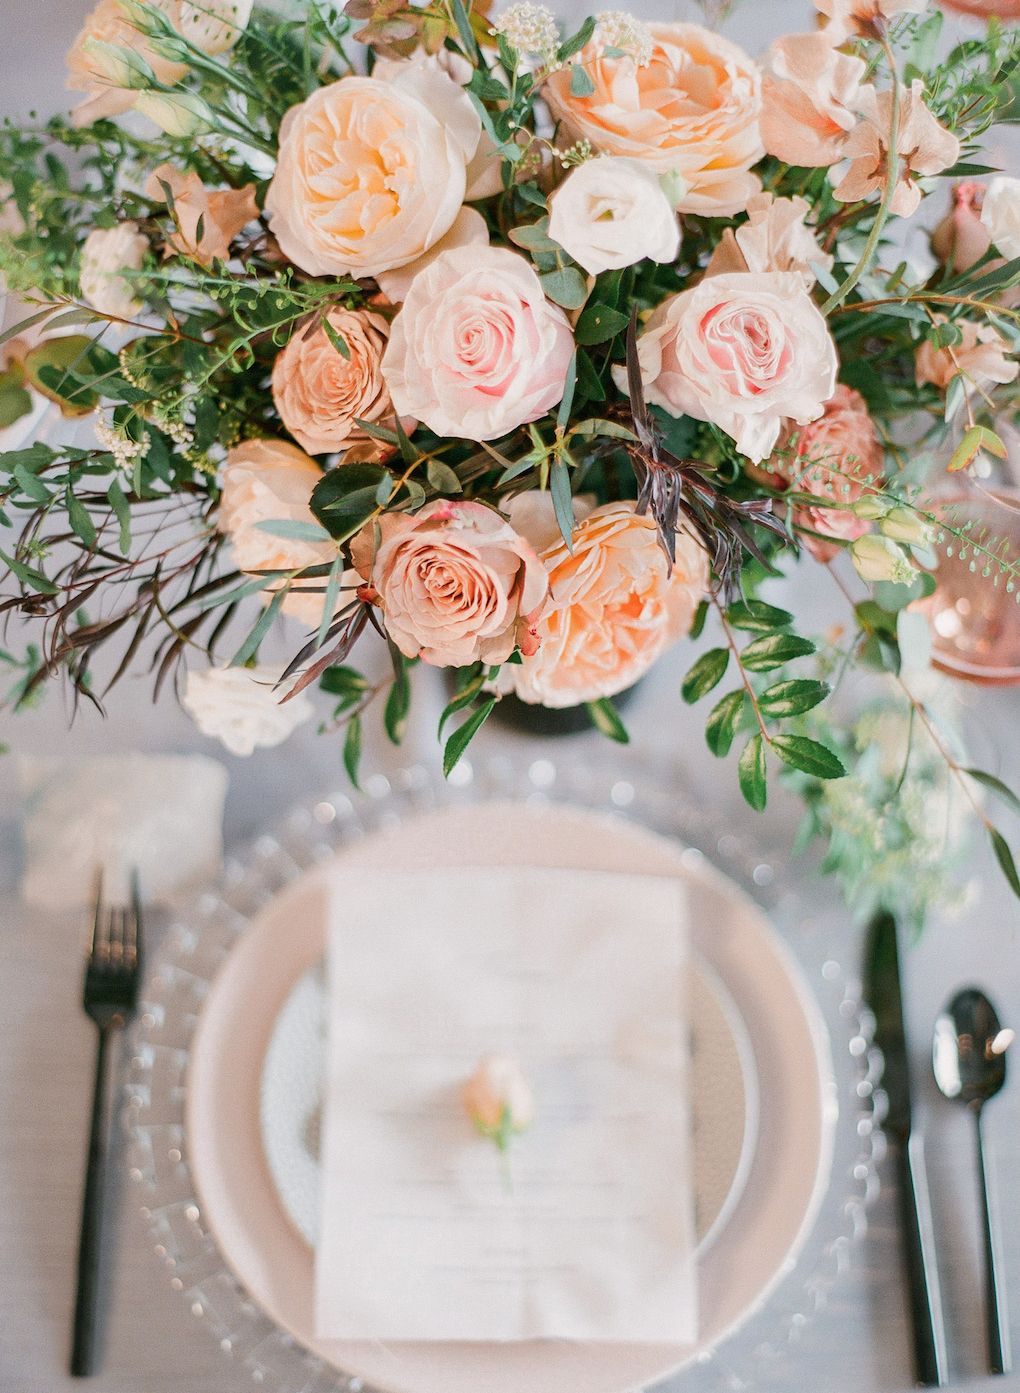 Wedding menu ideas: Soft and Subtle Palettes of Spring Blossoms | Editorial Shoot at The Renaissance Pittsburgh by Exhale Events. See more inspiration at exhale-events.com!